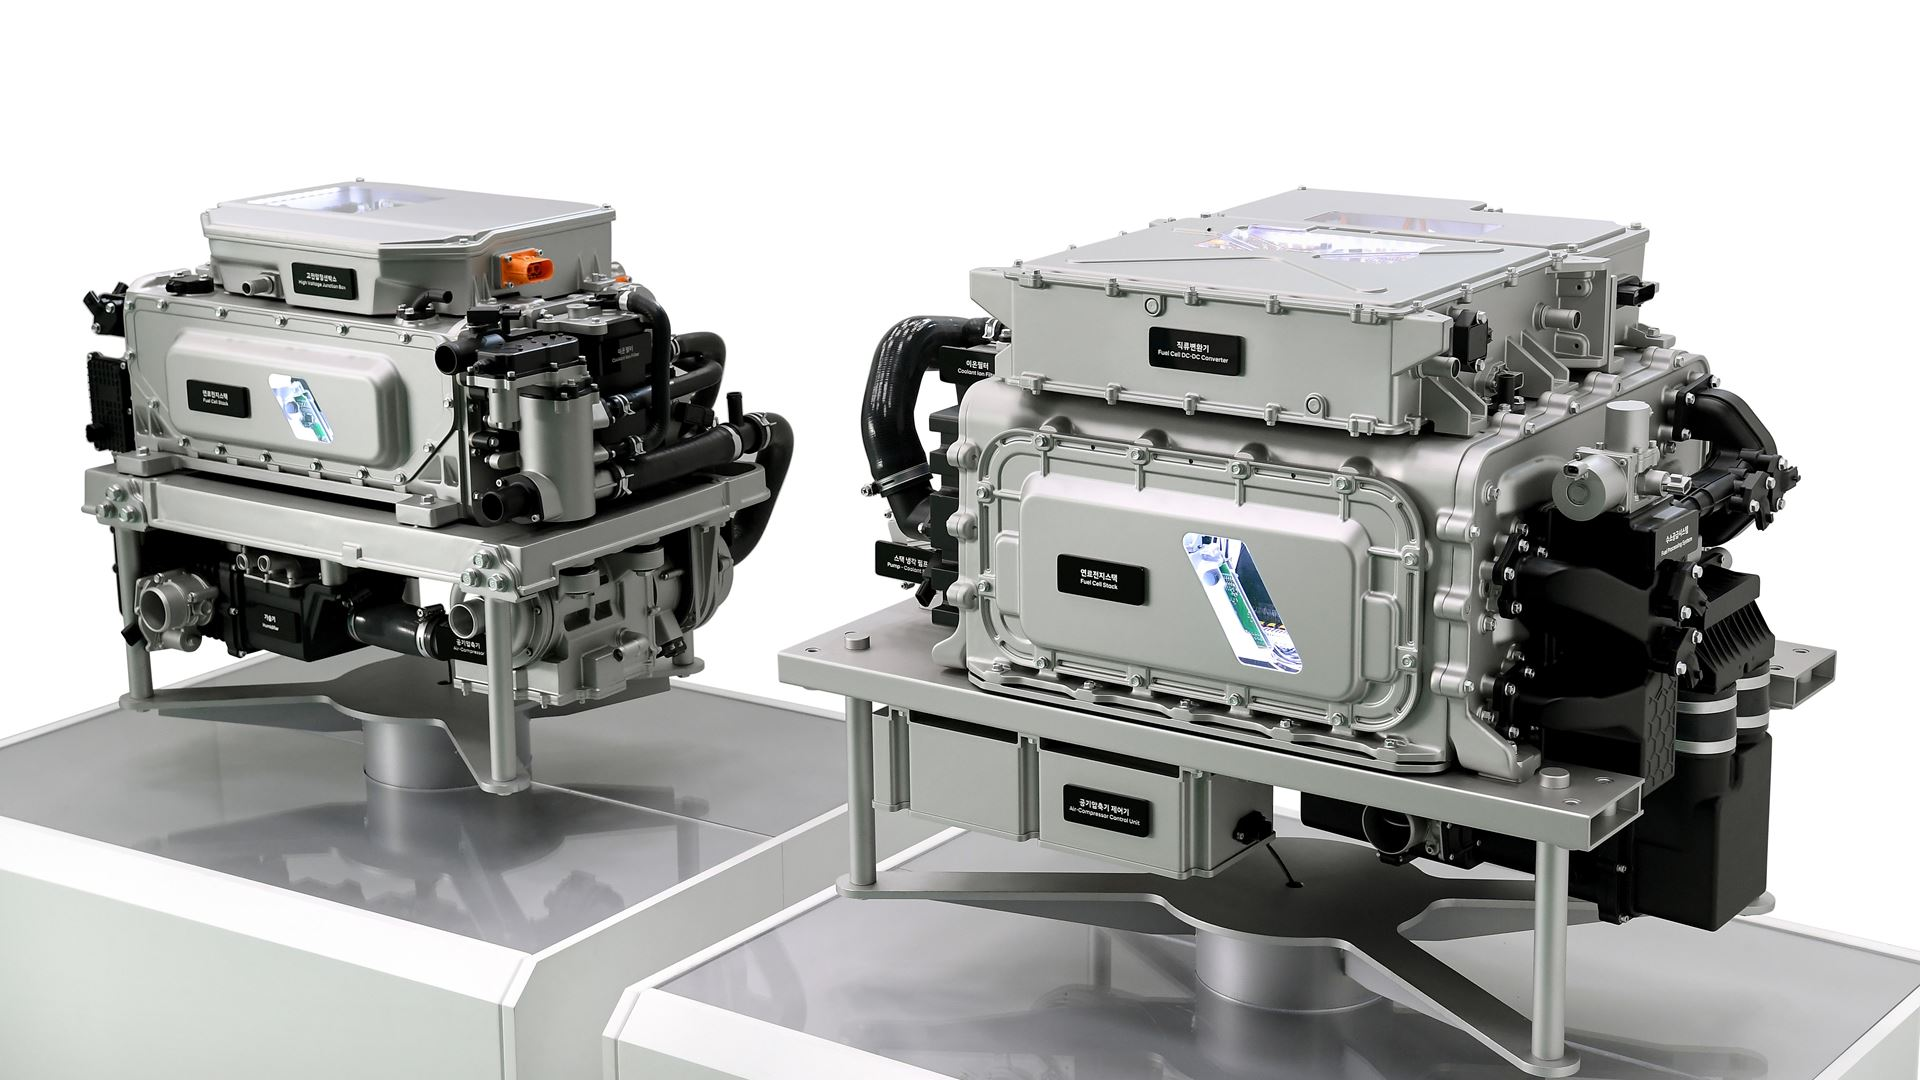 Hyundai Motor Group Presents Its Vision to Popularize Hydrogen by 2040 at Hydrogen Wave Forum - Image 4